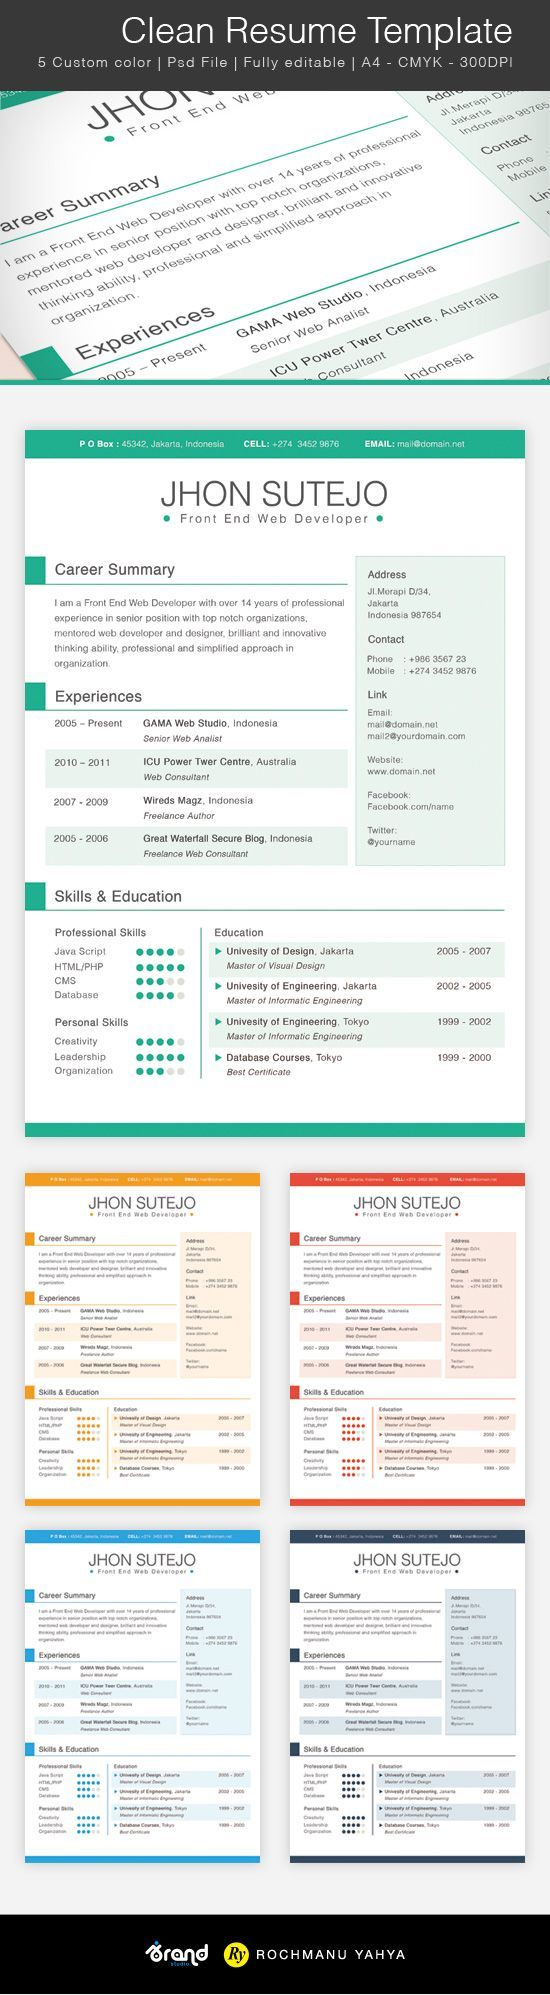 Our New Freebie Free Clean Resume Template   Colors  Resume